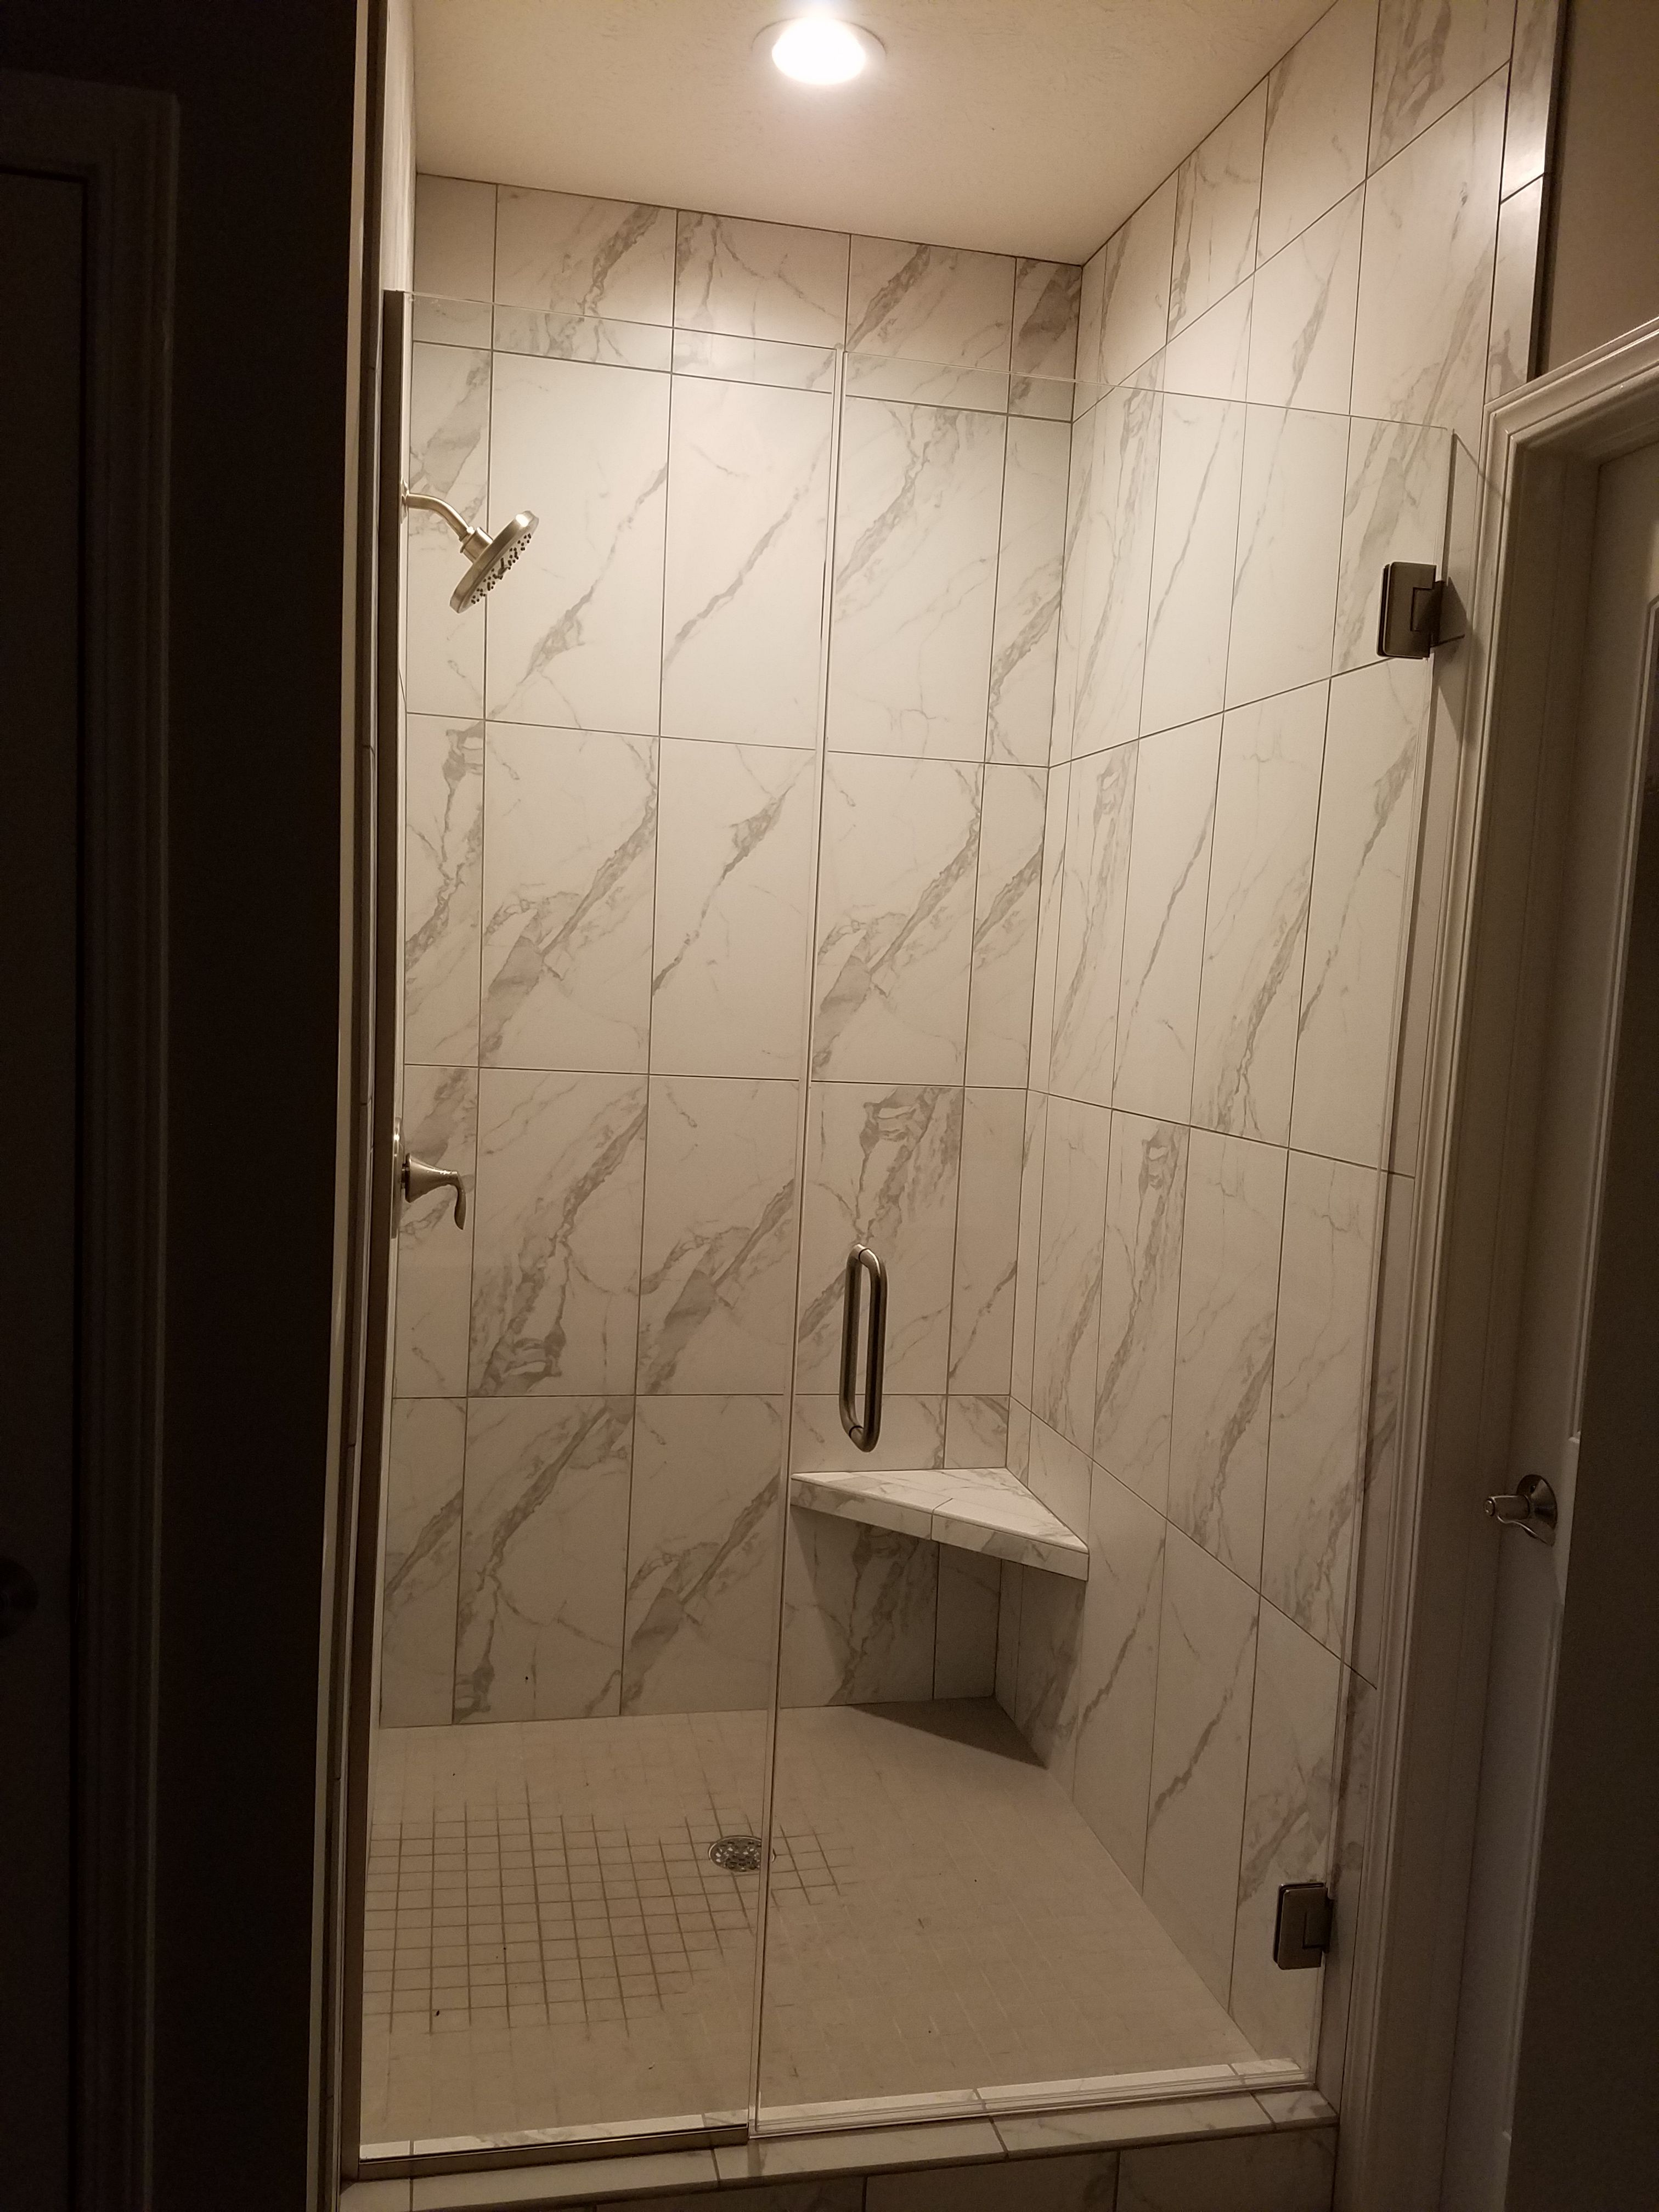 Pin by Quality Glass & Mirror on Shower Enclosures | Pinterest ...